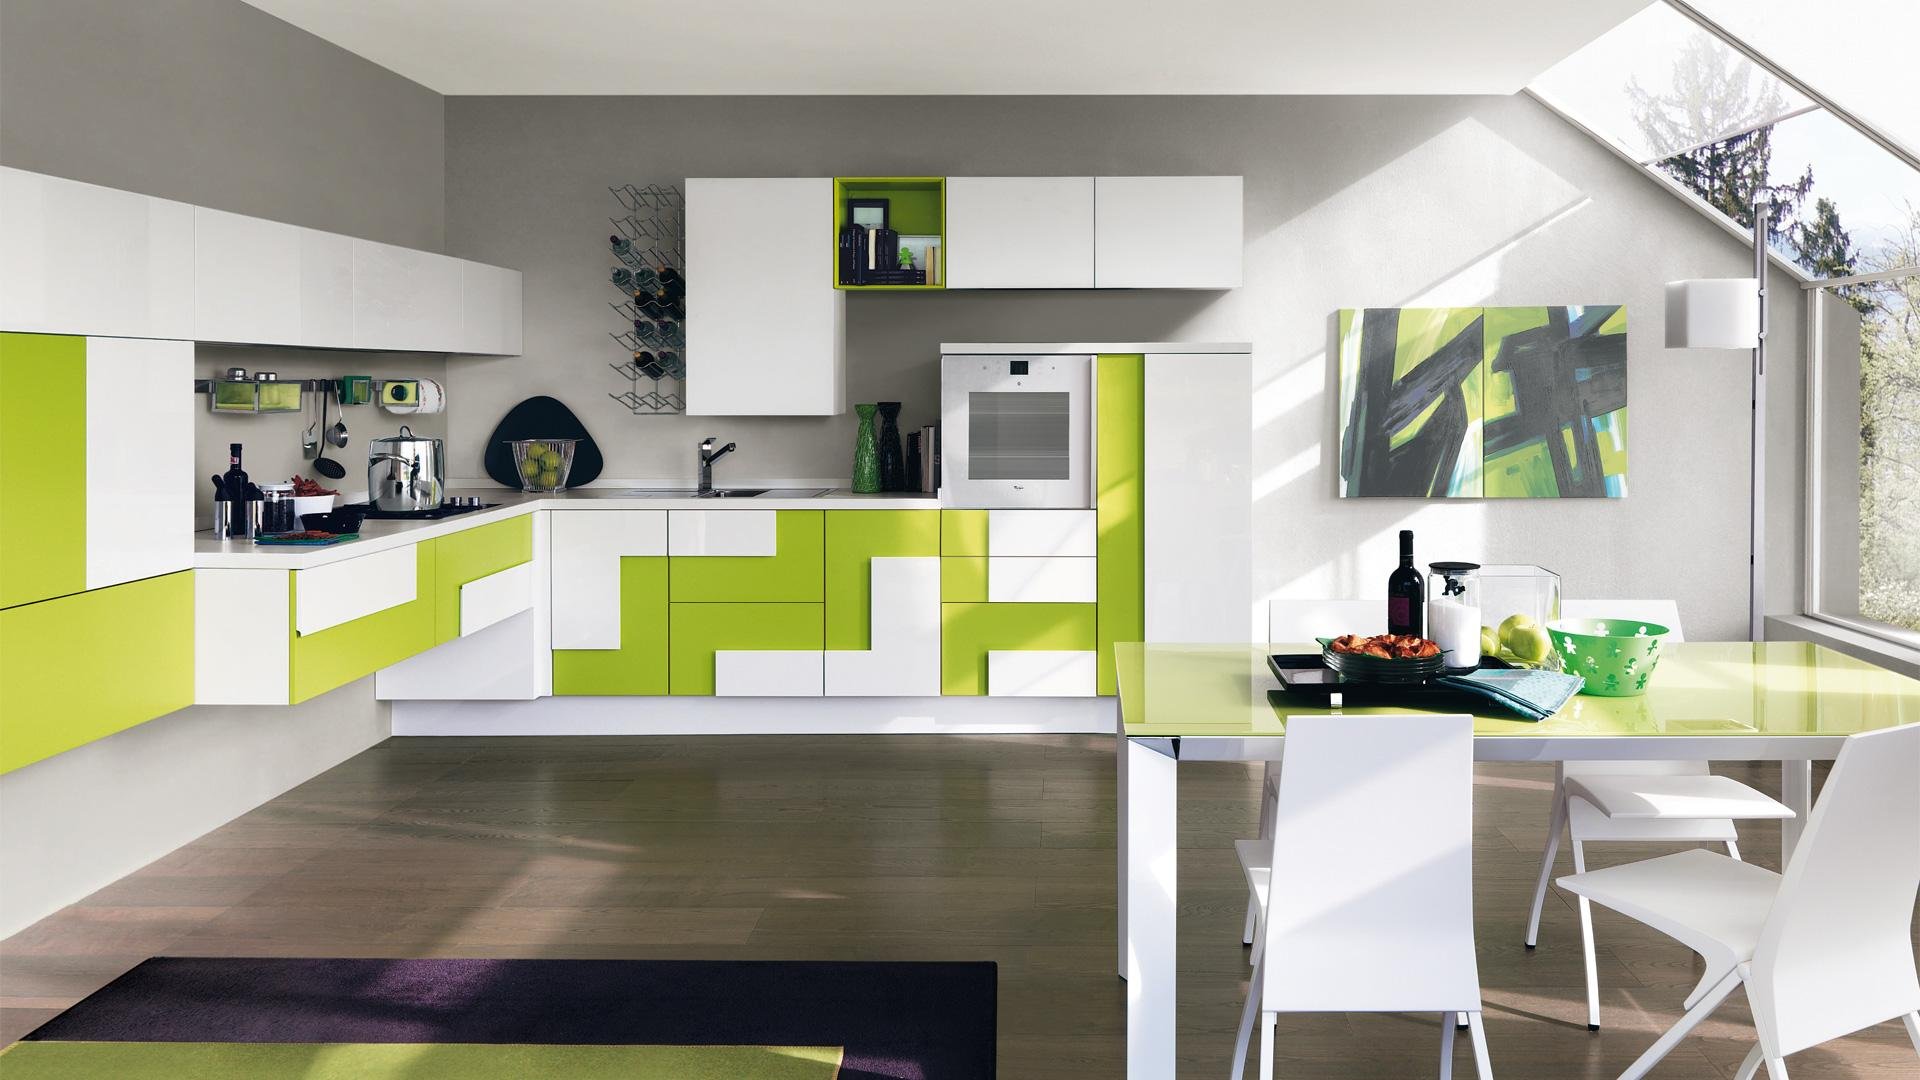 Cucine Moderne Ad Angolo. Excellent Cucine Ad Angolo With Cucine ...